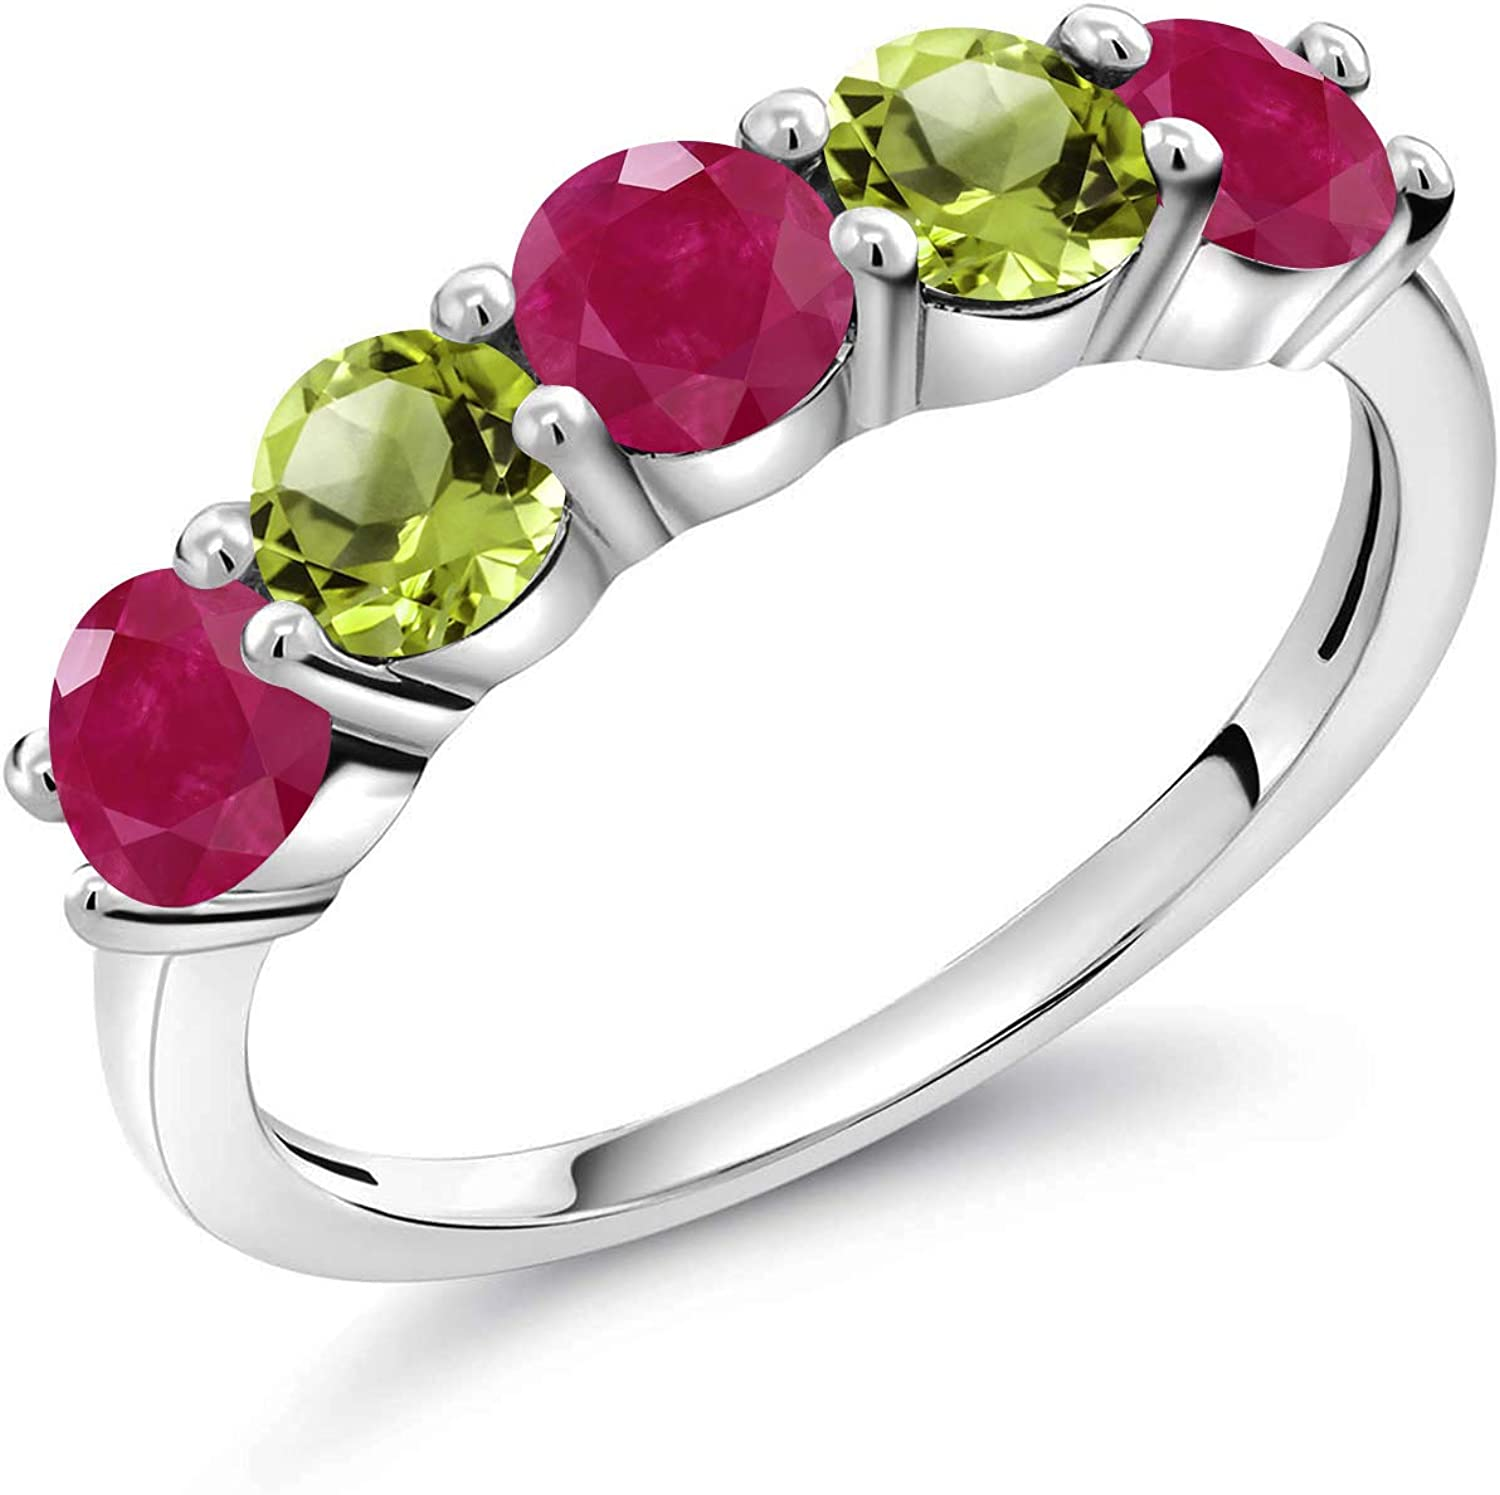 Gem Import Stone King 925 5 ☆ popular Sterling Silver Ruby Green Peridot and Wo Red